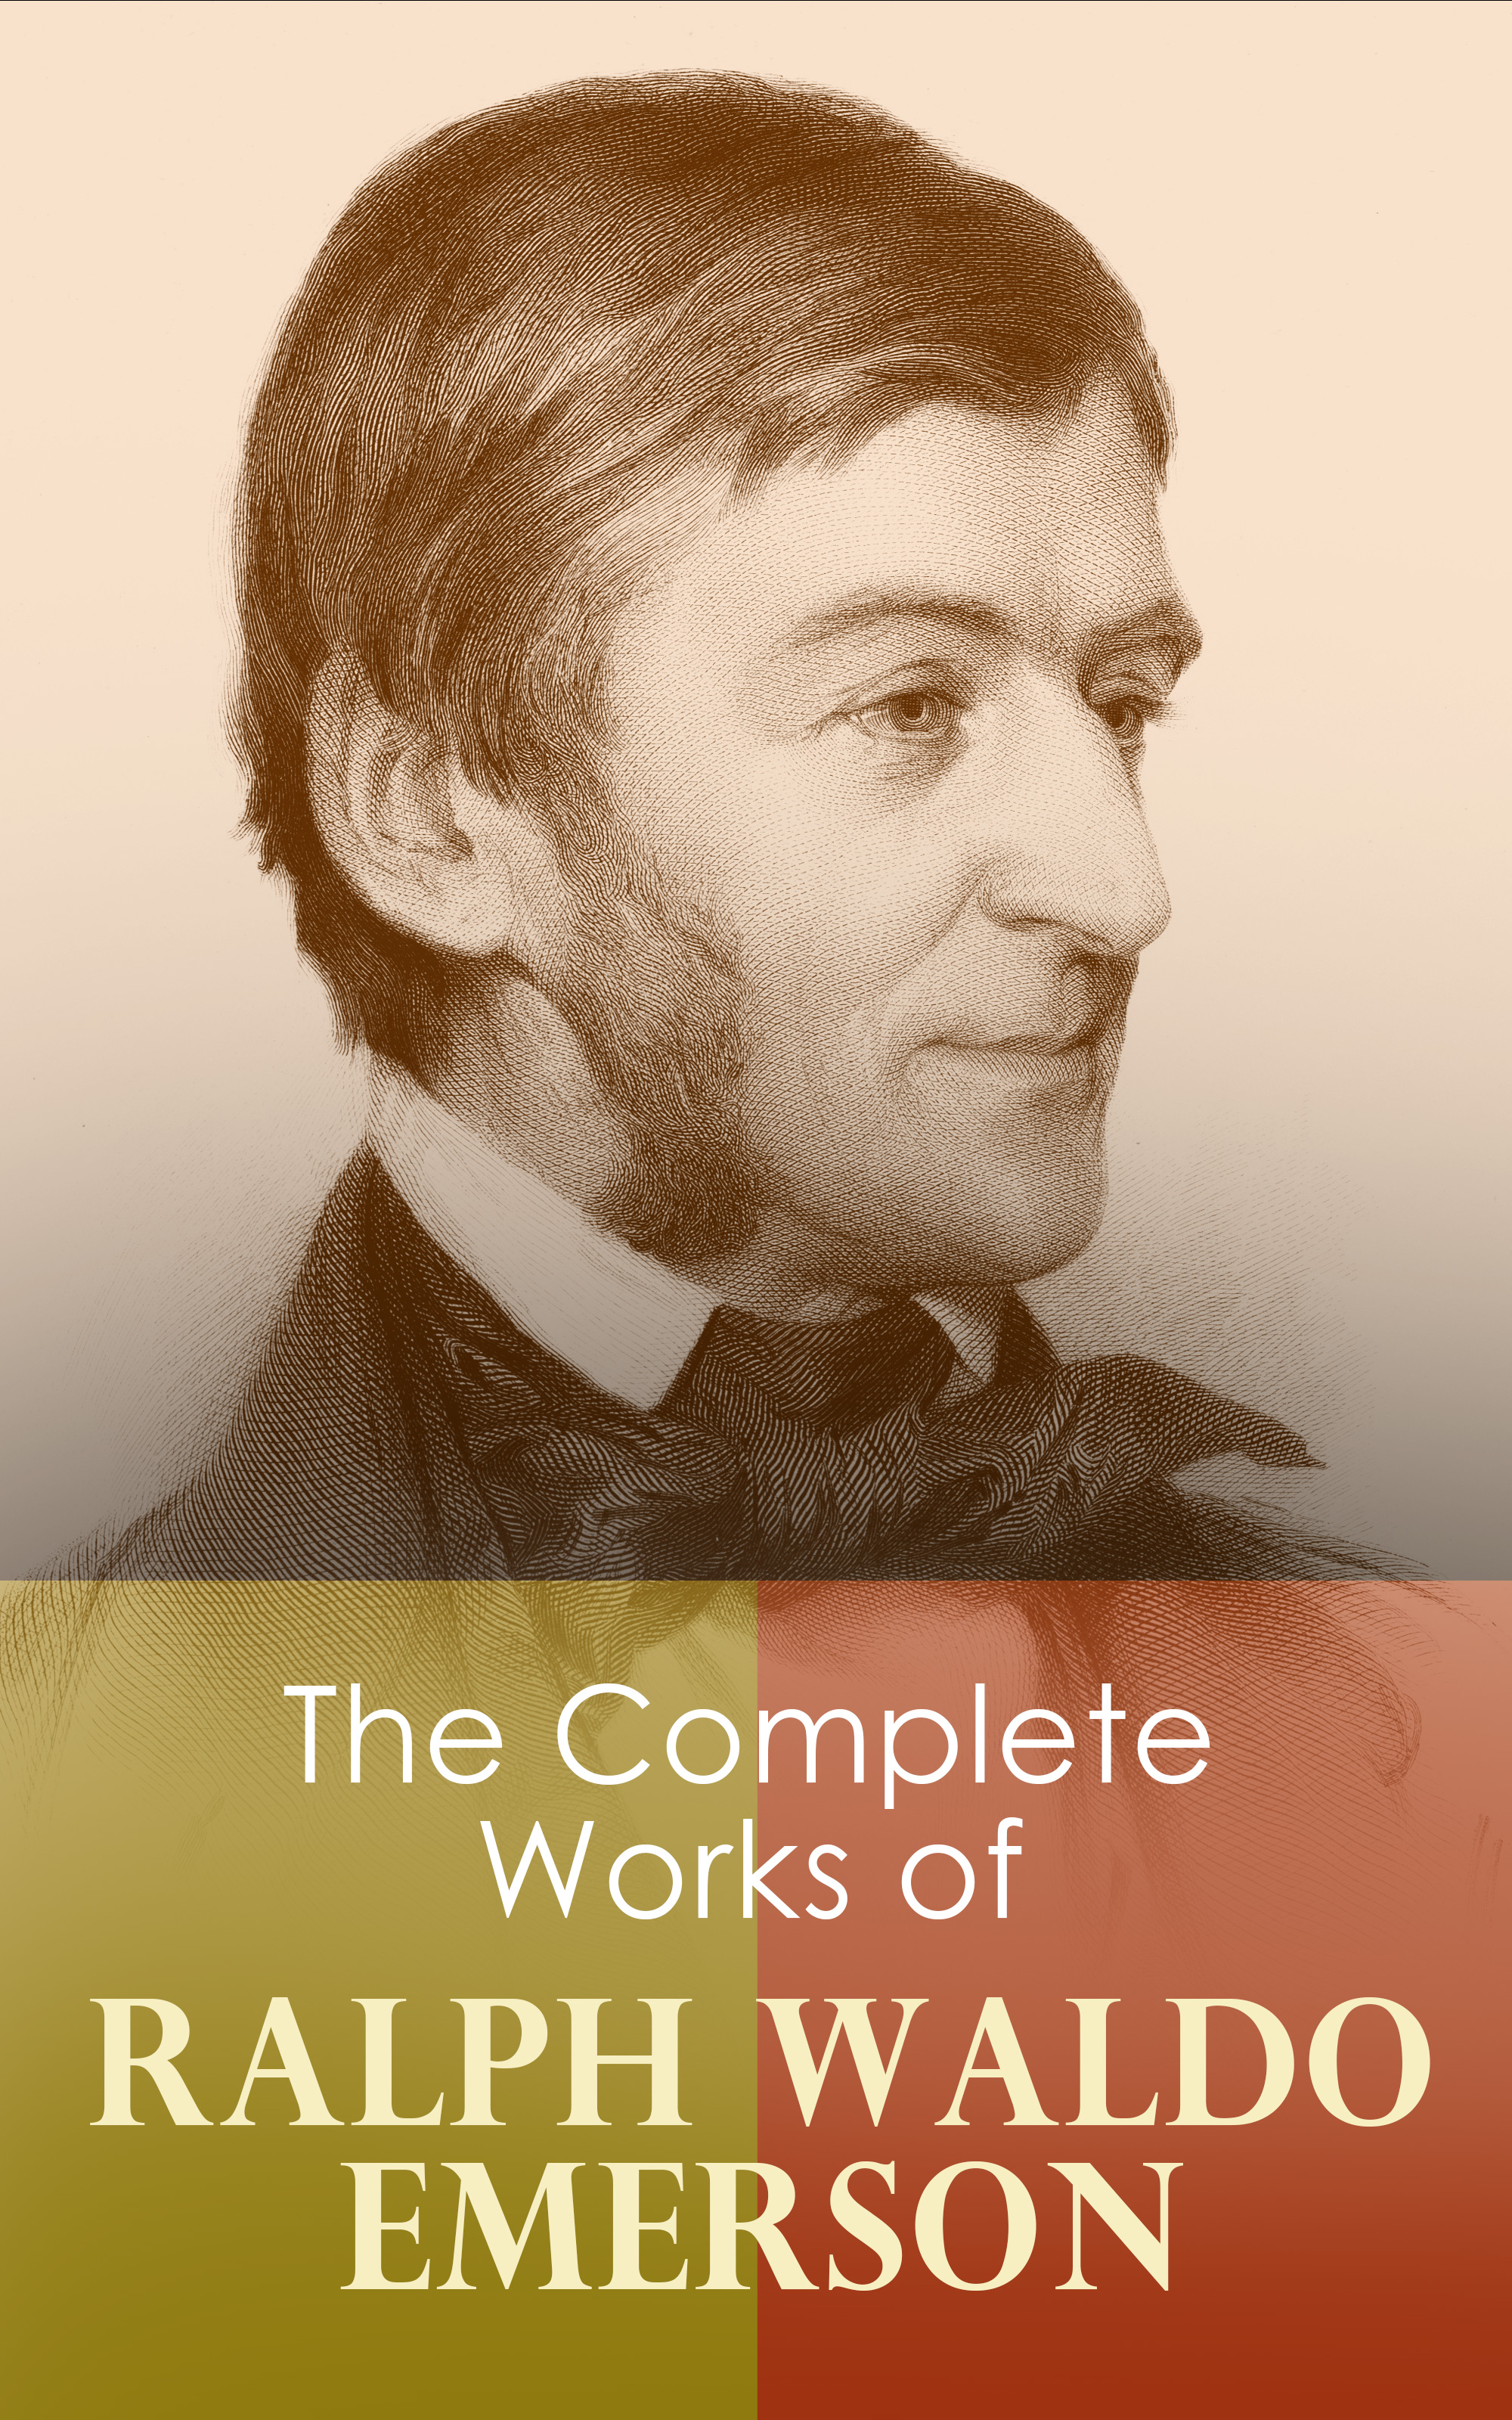 Ralph Waldo Emerson The Complete Works of Ralph Waldo Emerson